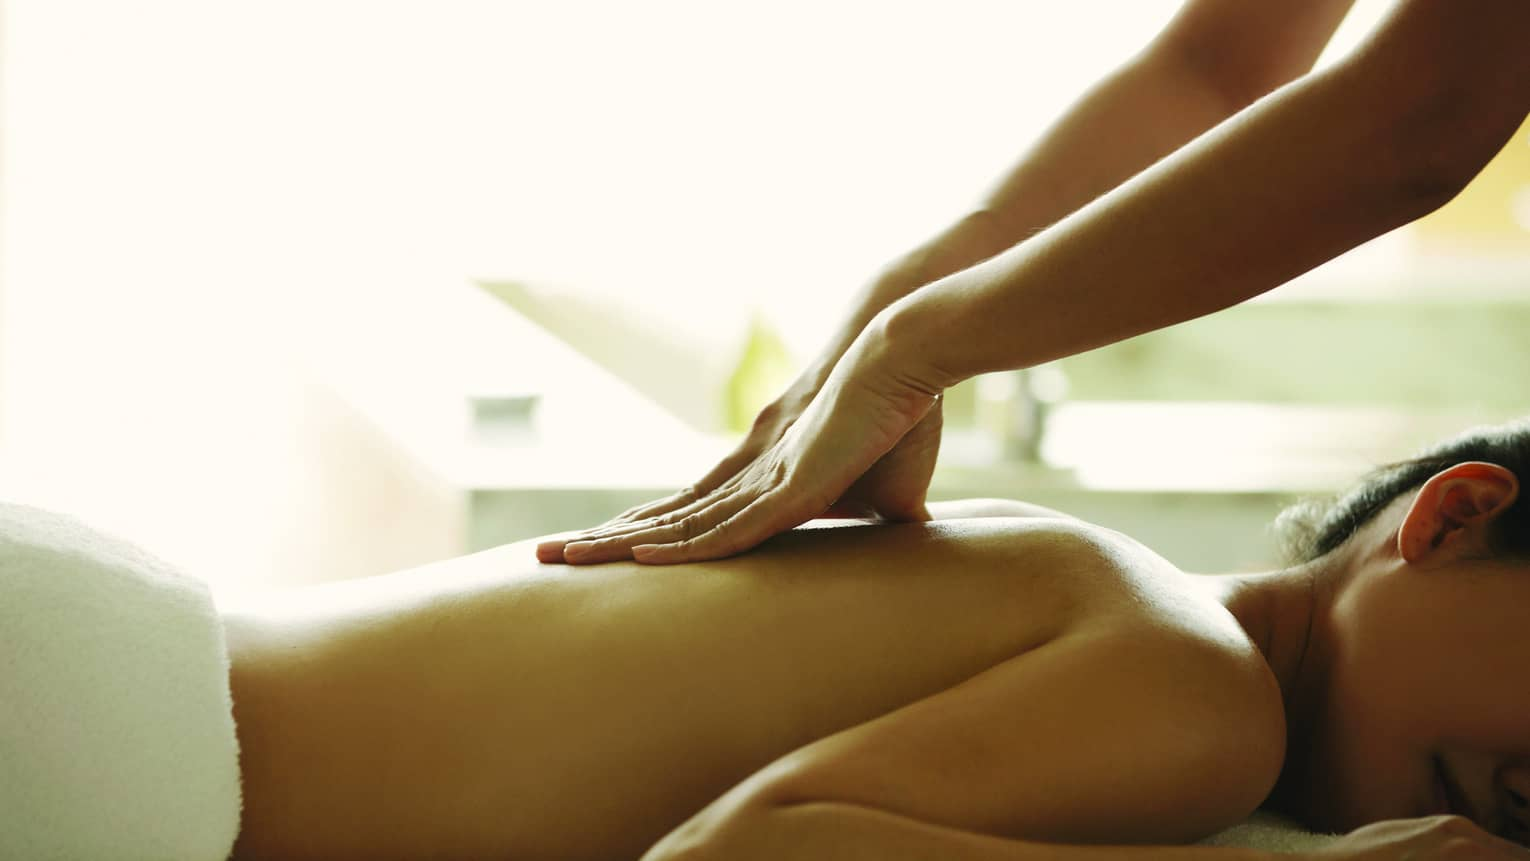 Masseuse reaches over, massages woman's bare back as she lies on spa table